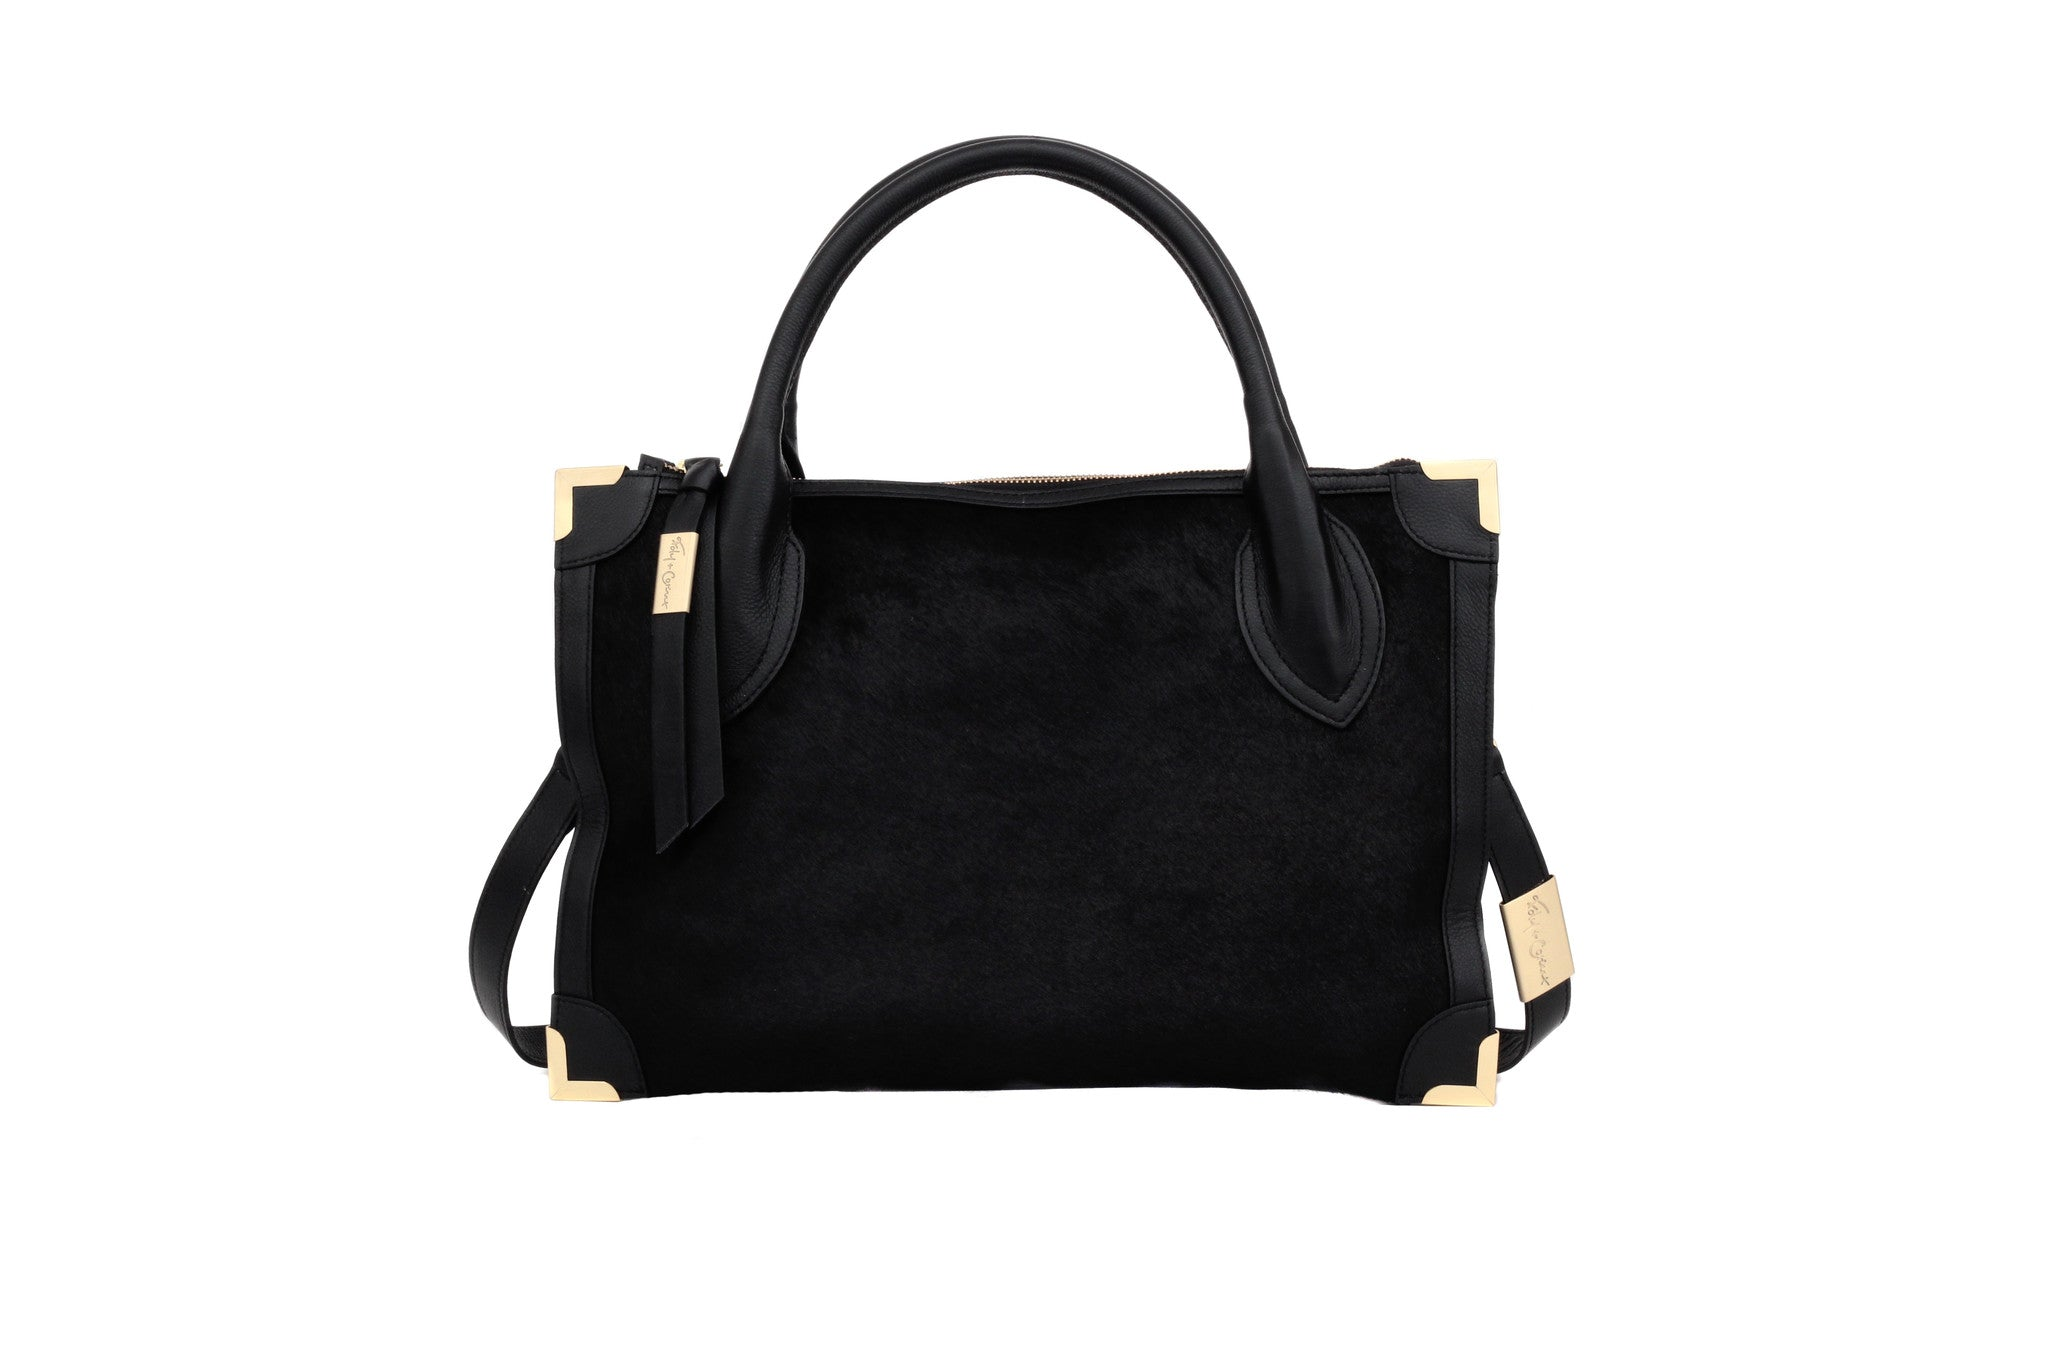 FC FRANKIE SATCHEL IN BLACK HAIRCALF